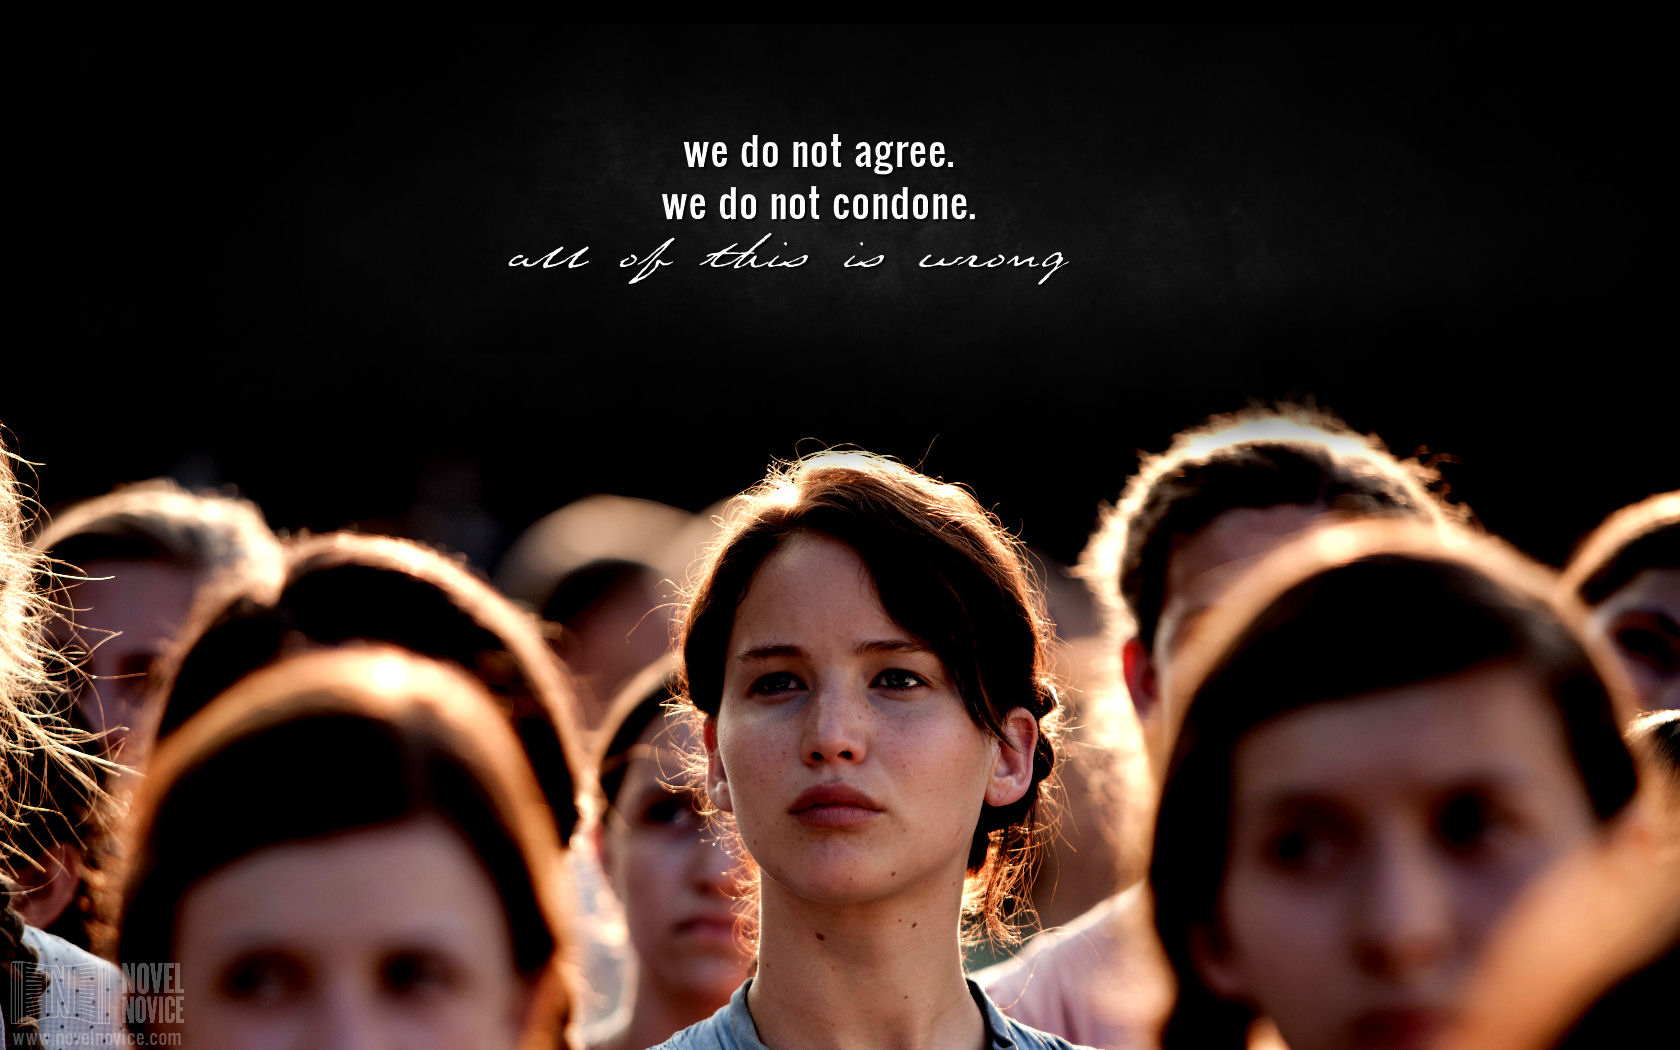 The Hunger Games Movie Desktop Wallpapers Part 2 - Novel Novice